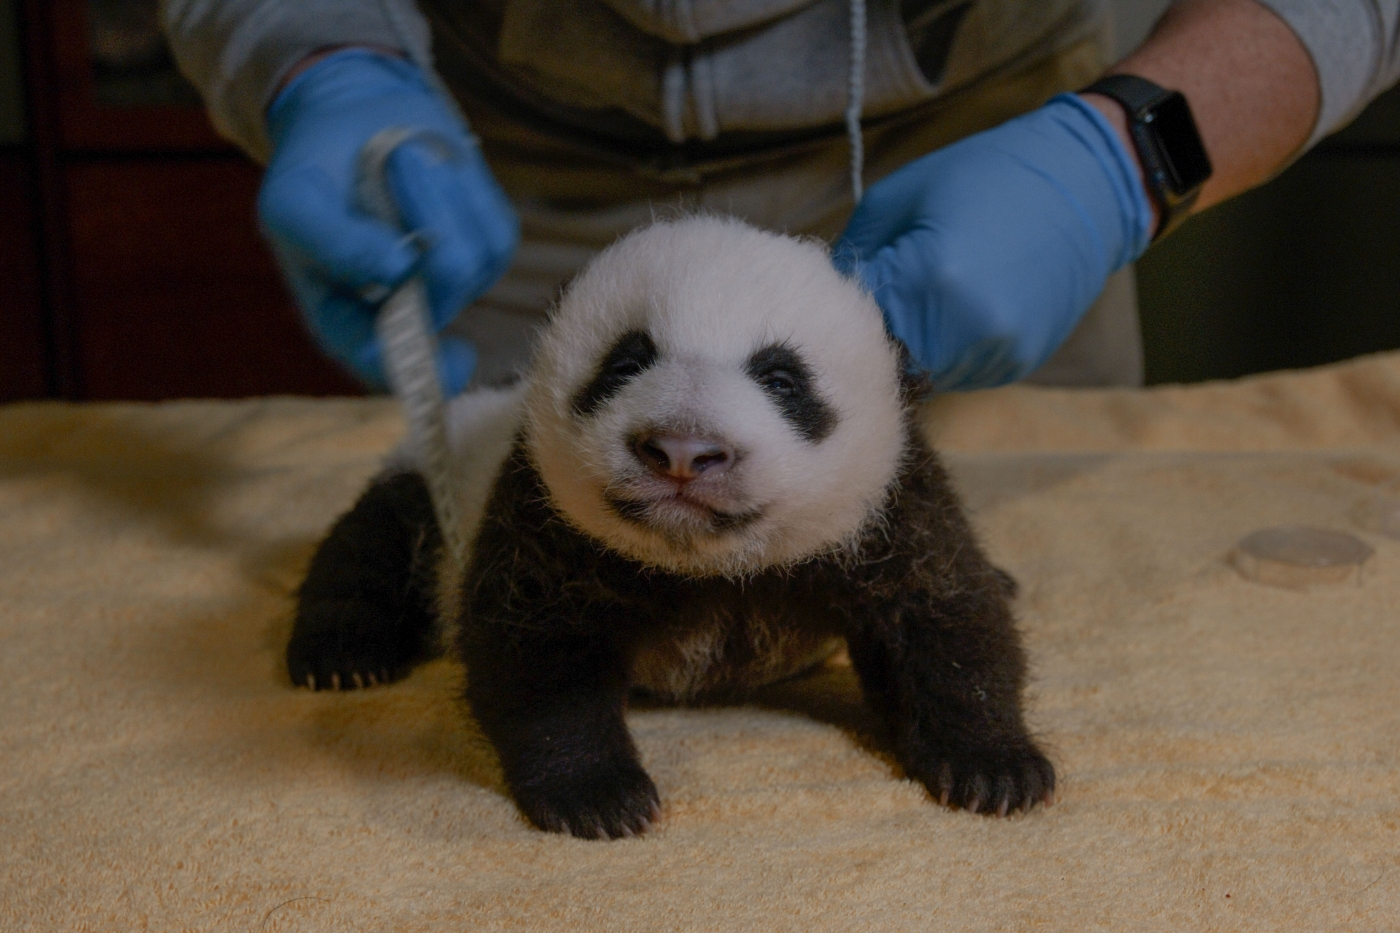 National Zoo's Adorable Giant Panda Cub Is Two Months Old!